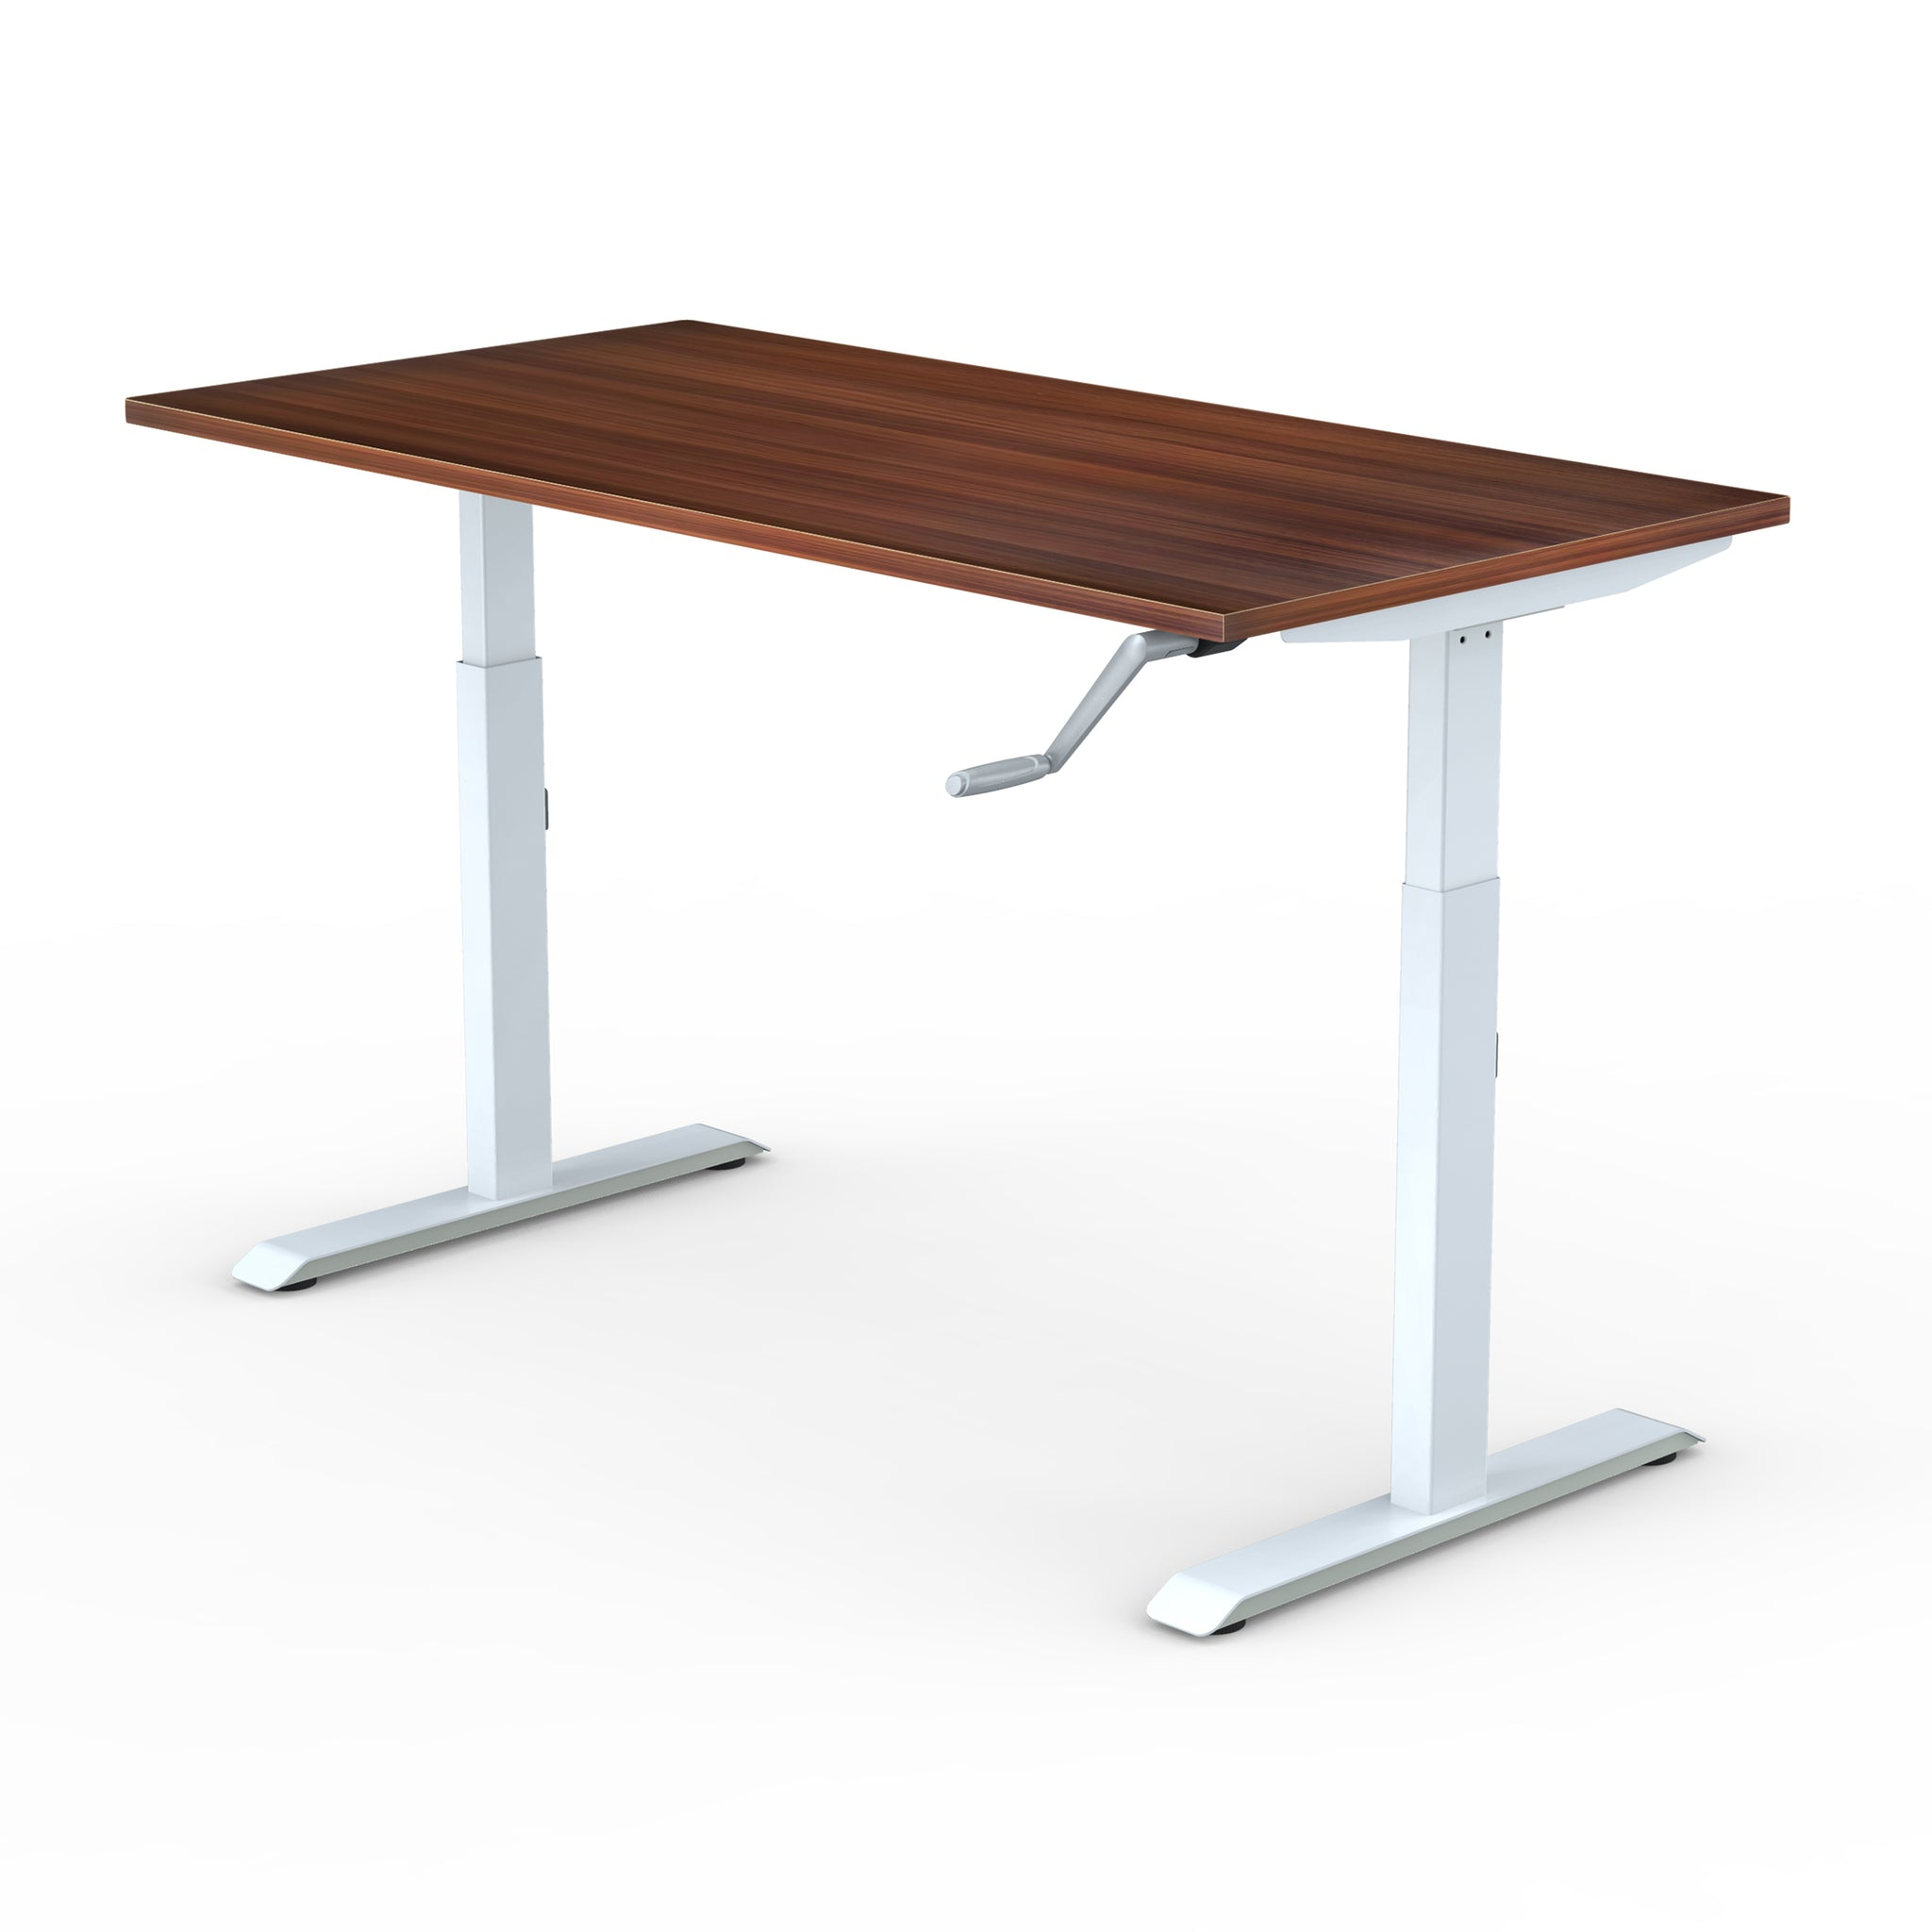 Manual | Height-Adjustable Desk with Walnut Laminate Table-Top (2 Stage)